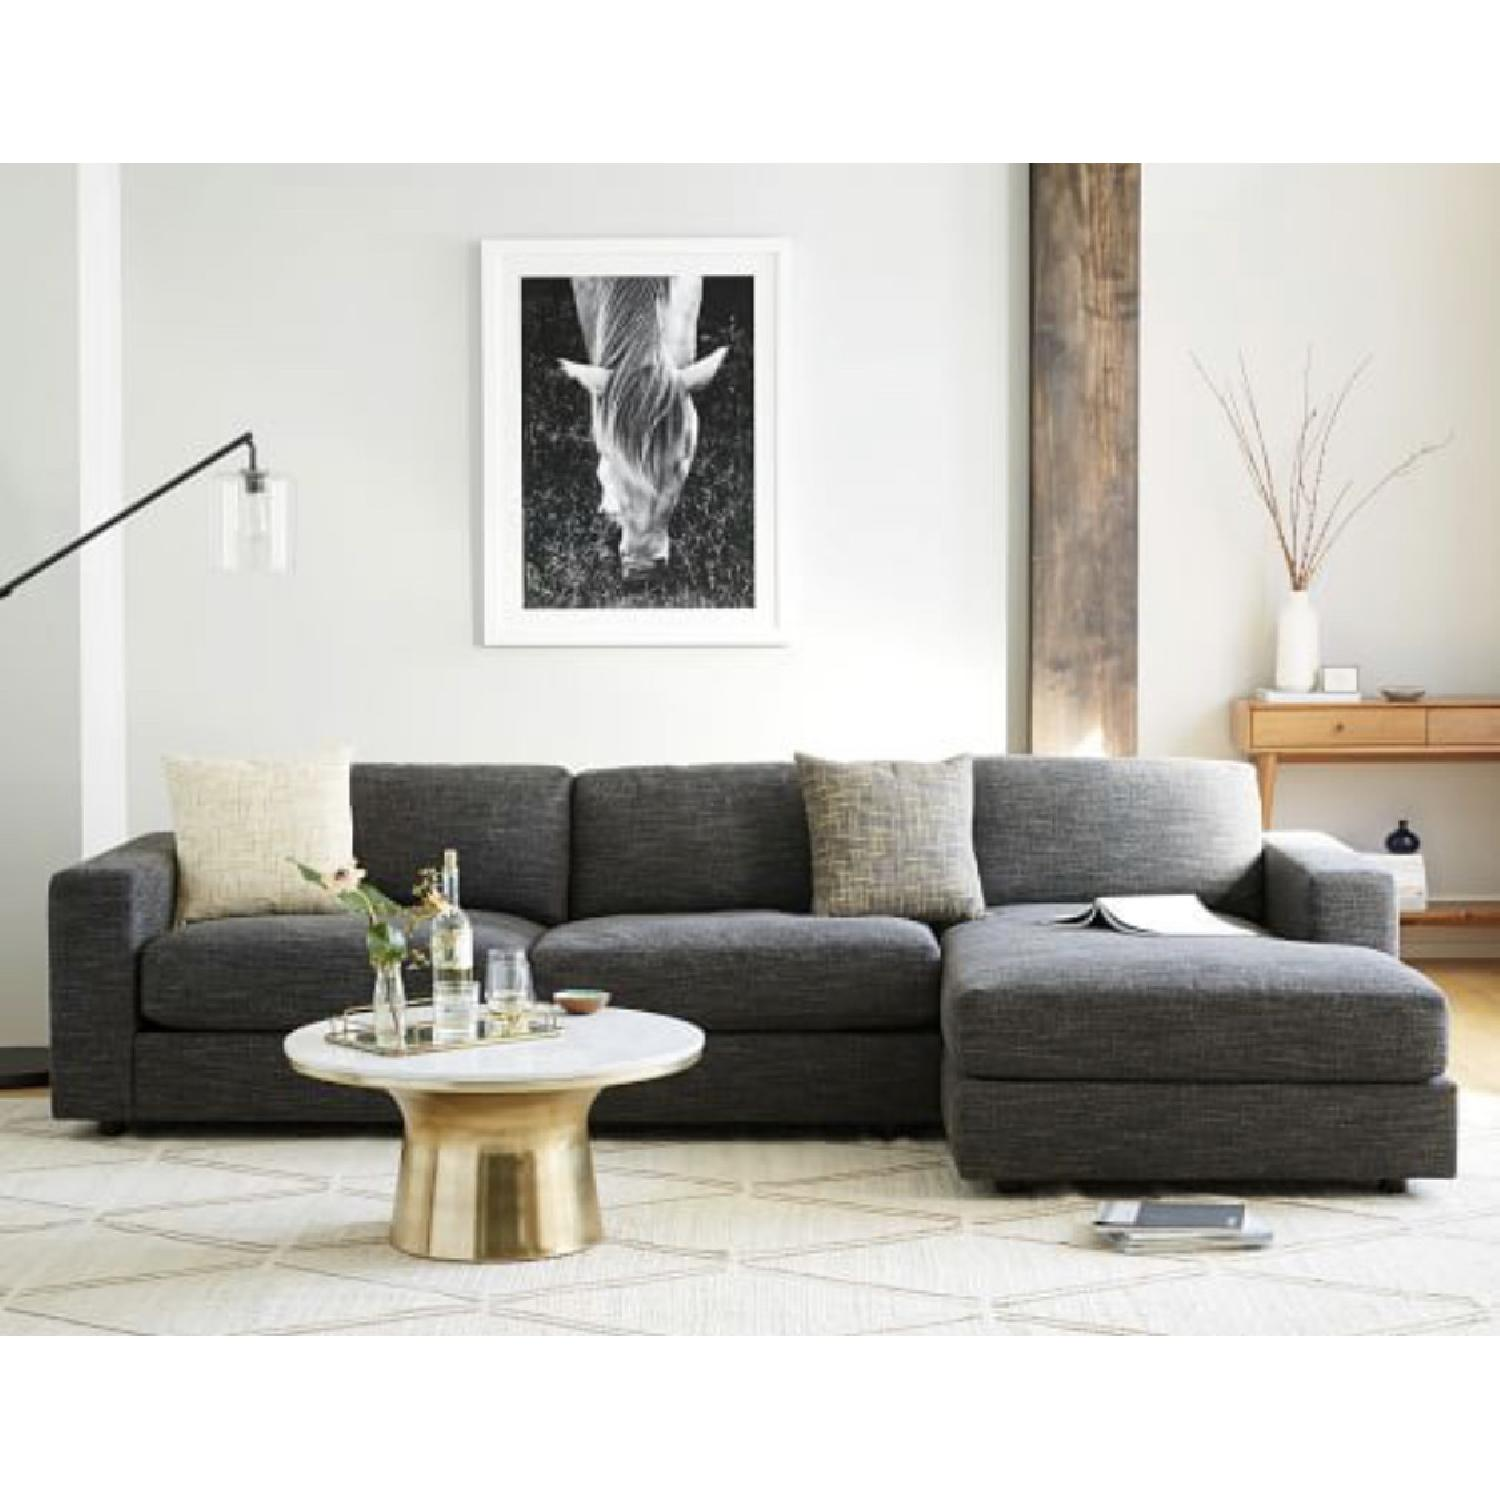 Awesome West Elm Urban 2 Piece Small Chaise Sectional Sofa Aptdeco Andrewgaddart Wooden Chair Designs For Living Room Andrewgaddartcom